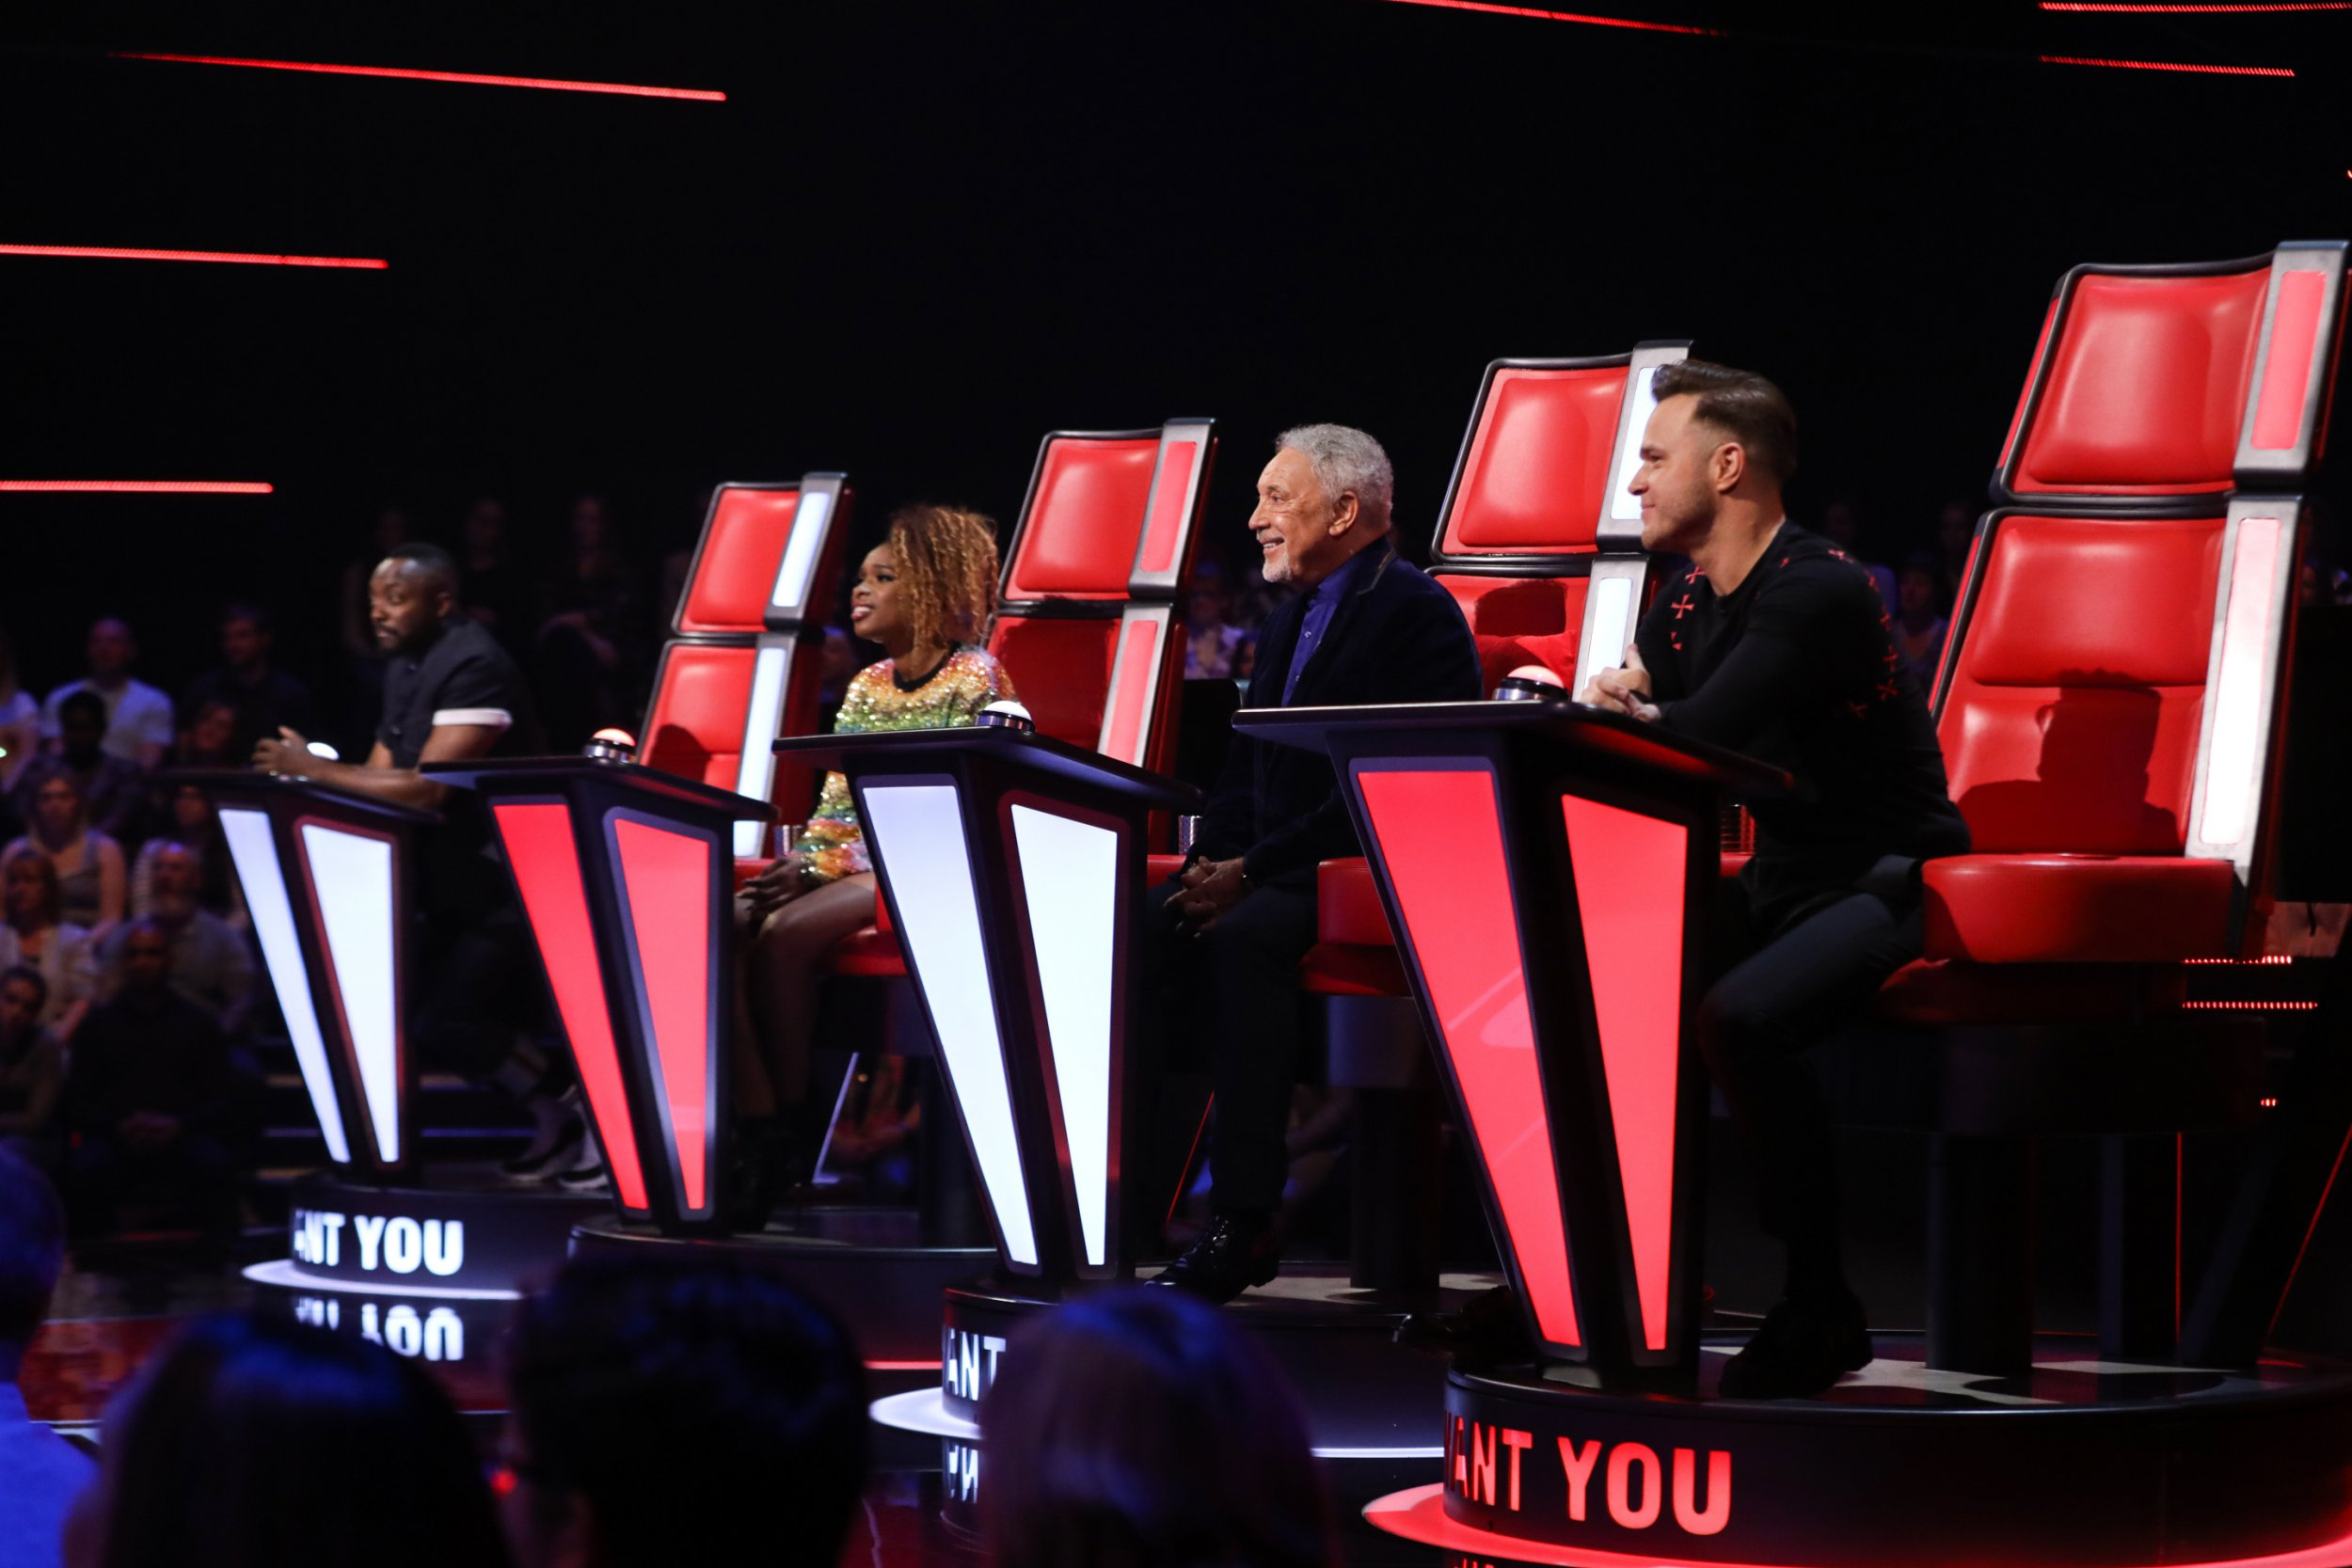 STRICT EMBARGO - NO USE BEFORE 21:30 09 FEB 2019 - Editorial use only Mandatory Credit: Photo by Rachel Joseph/ITV/REX/Shutterstock (10099380a) Nyema Kalfon perfoms. Will and Sir Tom turns Nyema chooses Team Will - will i am, Jennifer Hudson, Tom Jones, Olly Murs. 'The Voice UK' TV Show, Series 3, Episode 6, UK - 09 Feb 2019